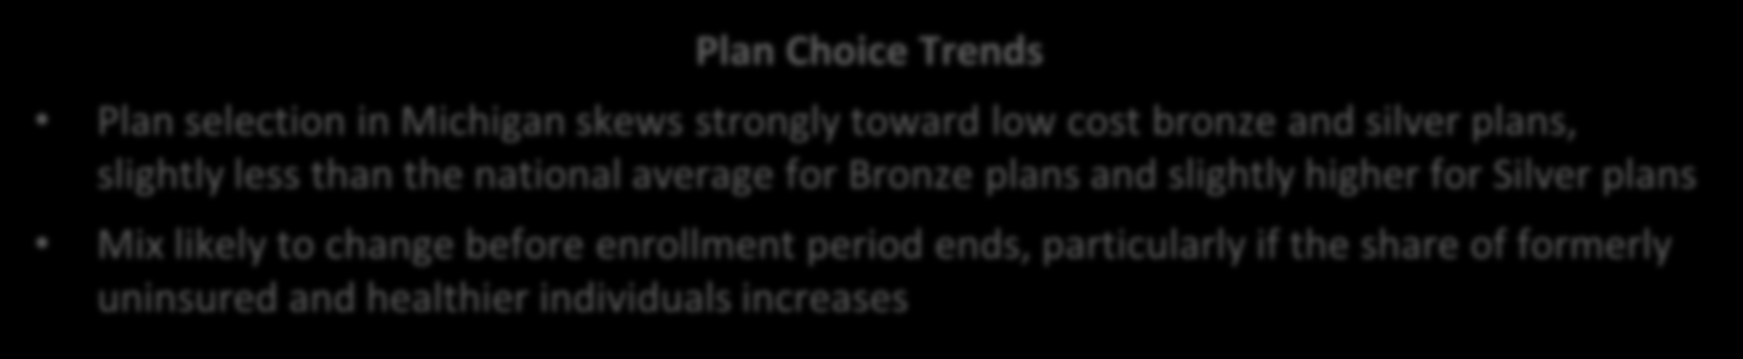 Bronze and Silver Plans Make the Majority of Public Exchange Enrollment Across the US and in Michigan Michigan 1 Plan Selection by Metal Level Enrollment Through Dec 2013 National Bronze Bronze 12%